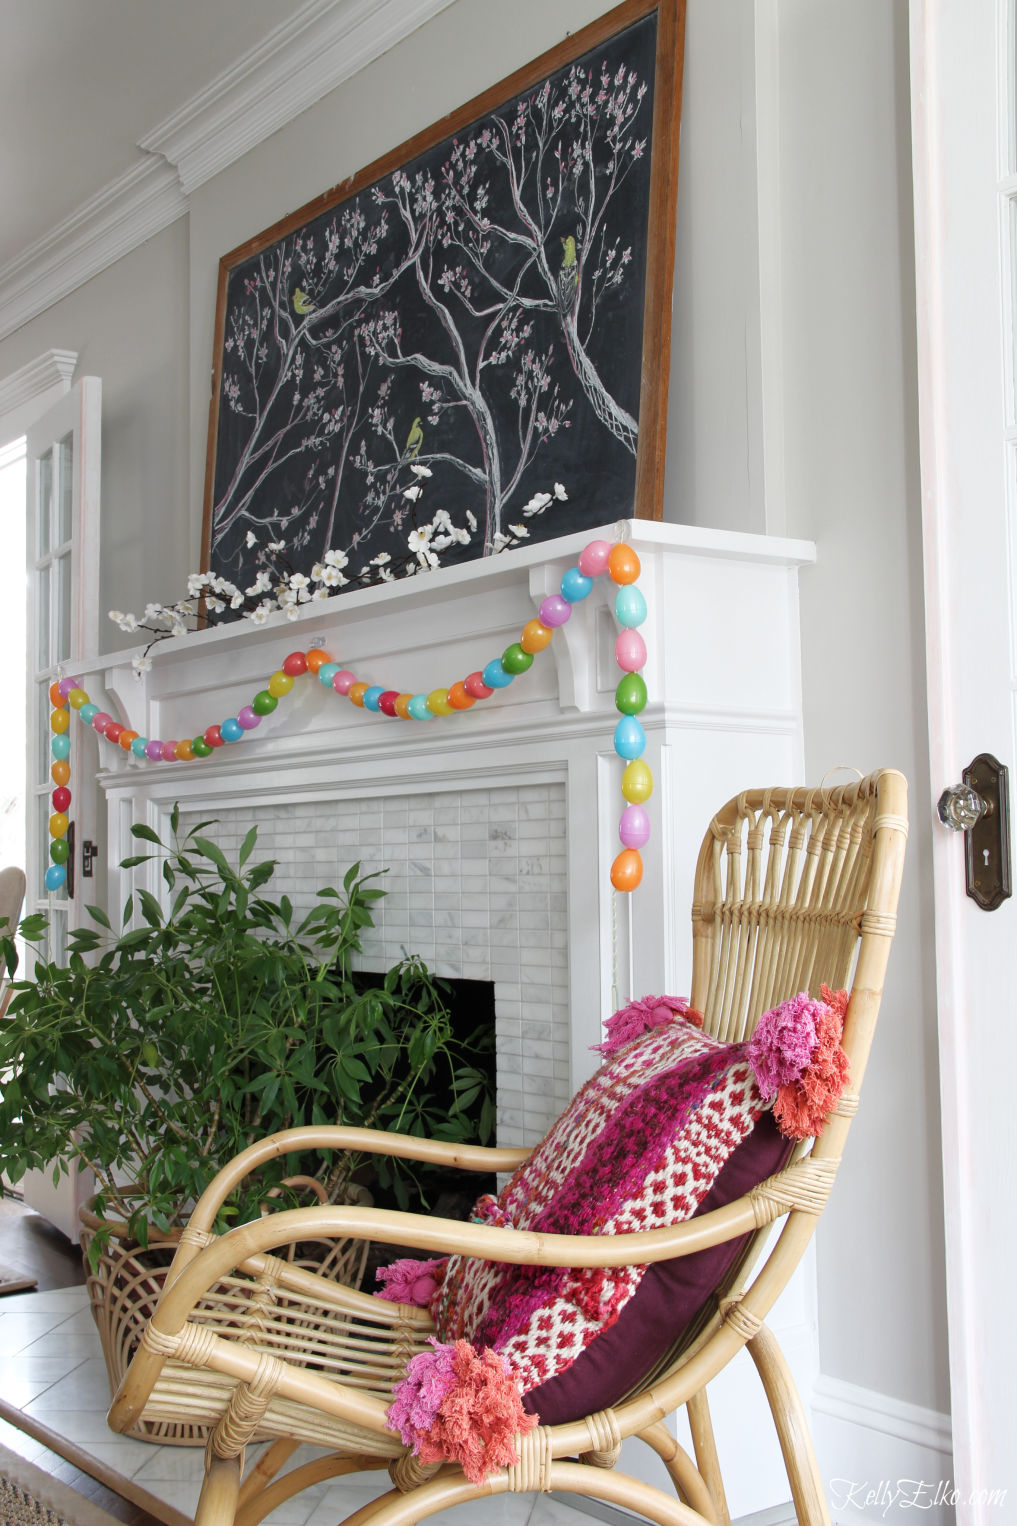 Spring chalkboard mantel - love the original chalk art on the vintage chalkboard and the DIY egg garland kellyelko.com #easter #easterdecor #spring #springdecor #mantel #springmantel #eastereggs #diycrafts #eastercrafts #springcrafts #lighting #plants